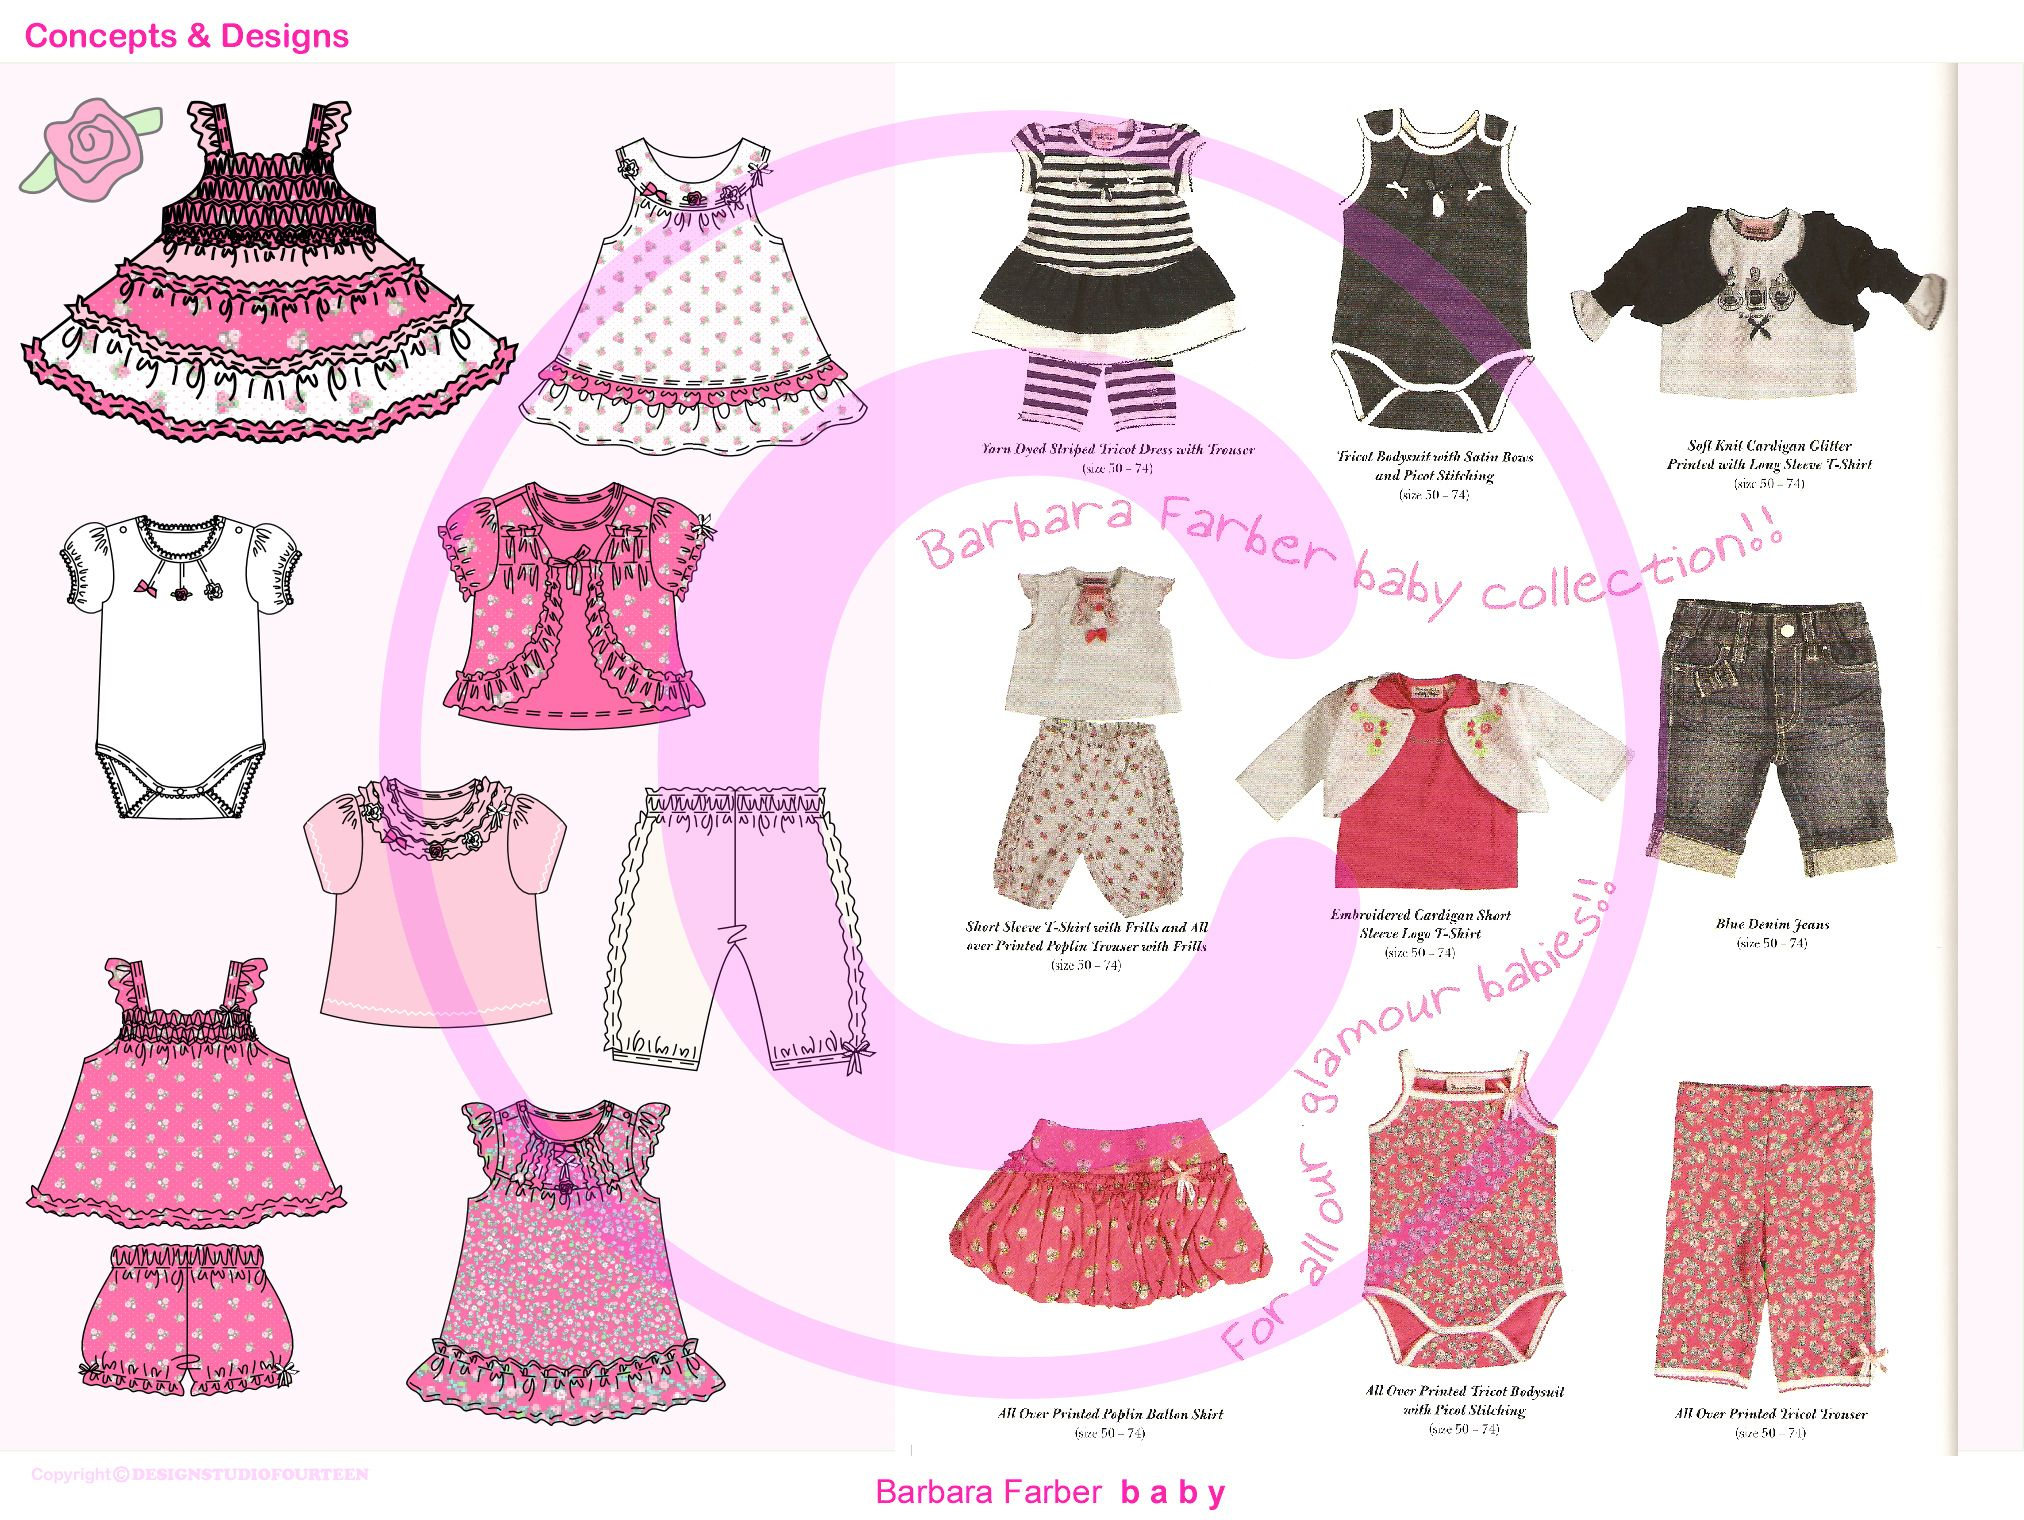 Designing styles & graphics for Baby Girls Summer Collection ...